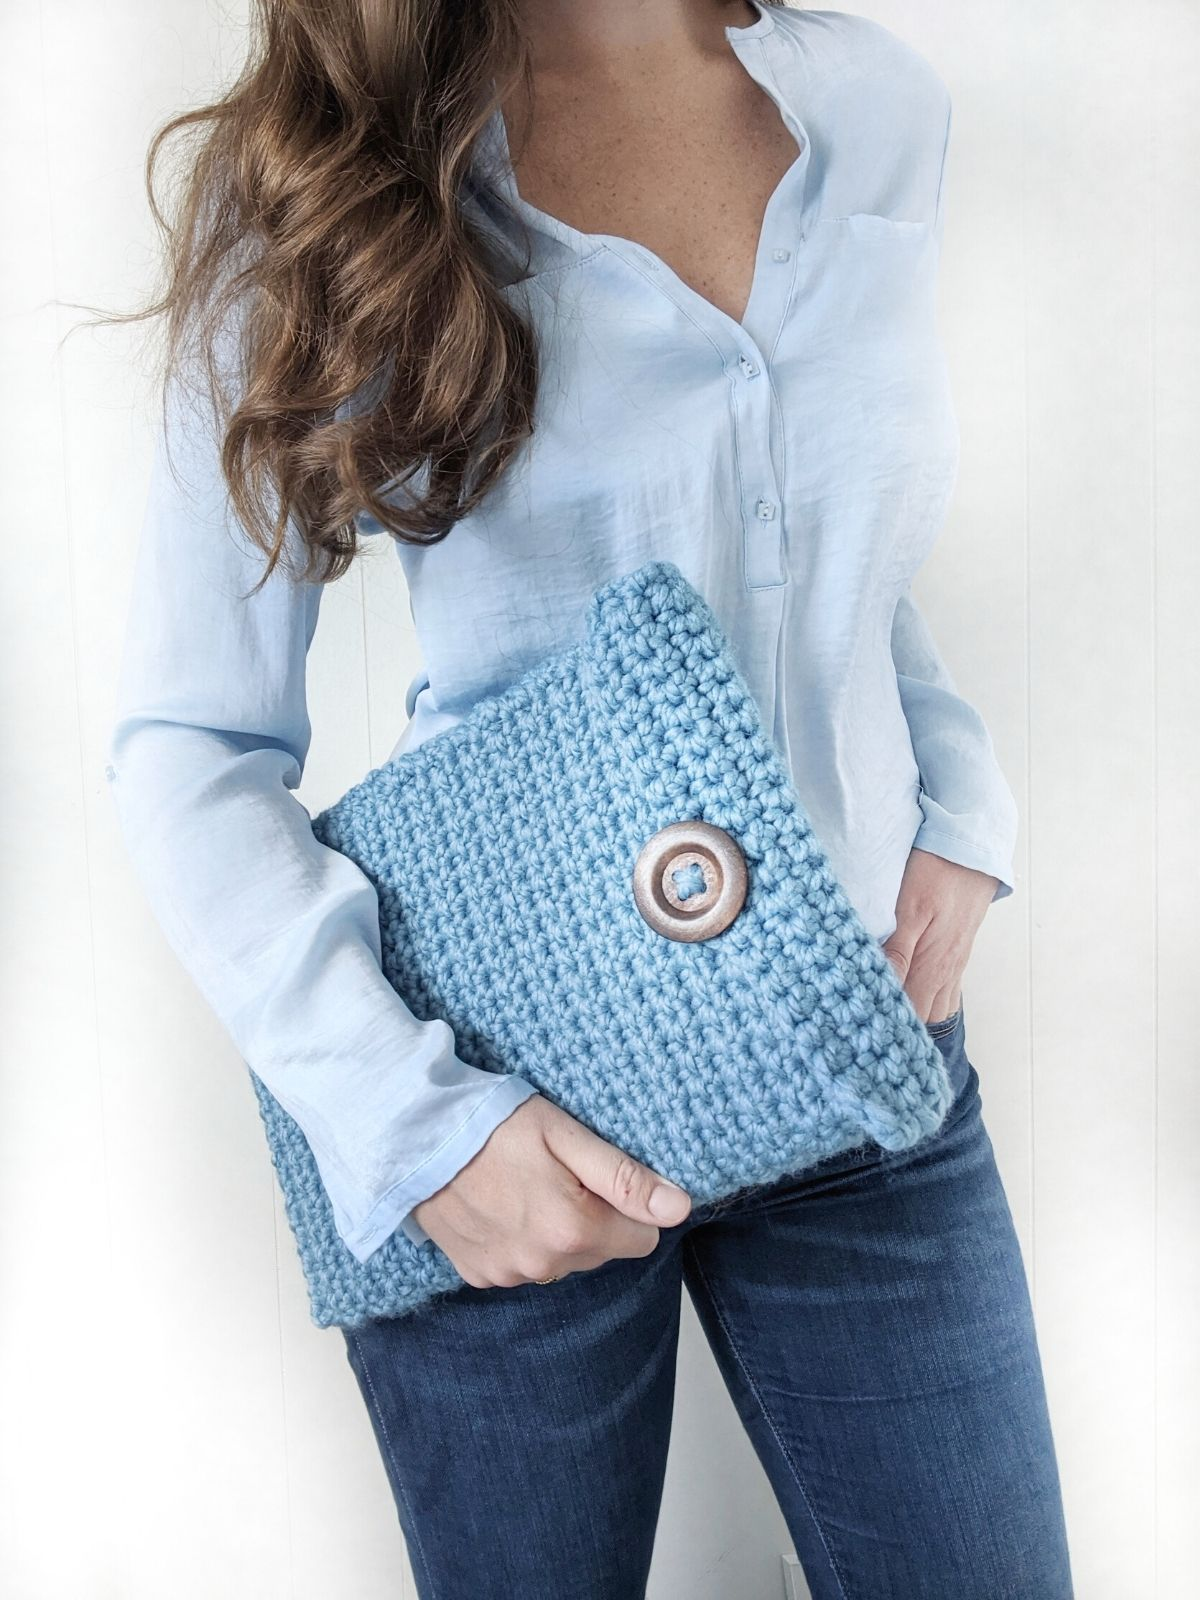 crochet laptop cover made with chunky yarn